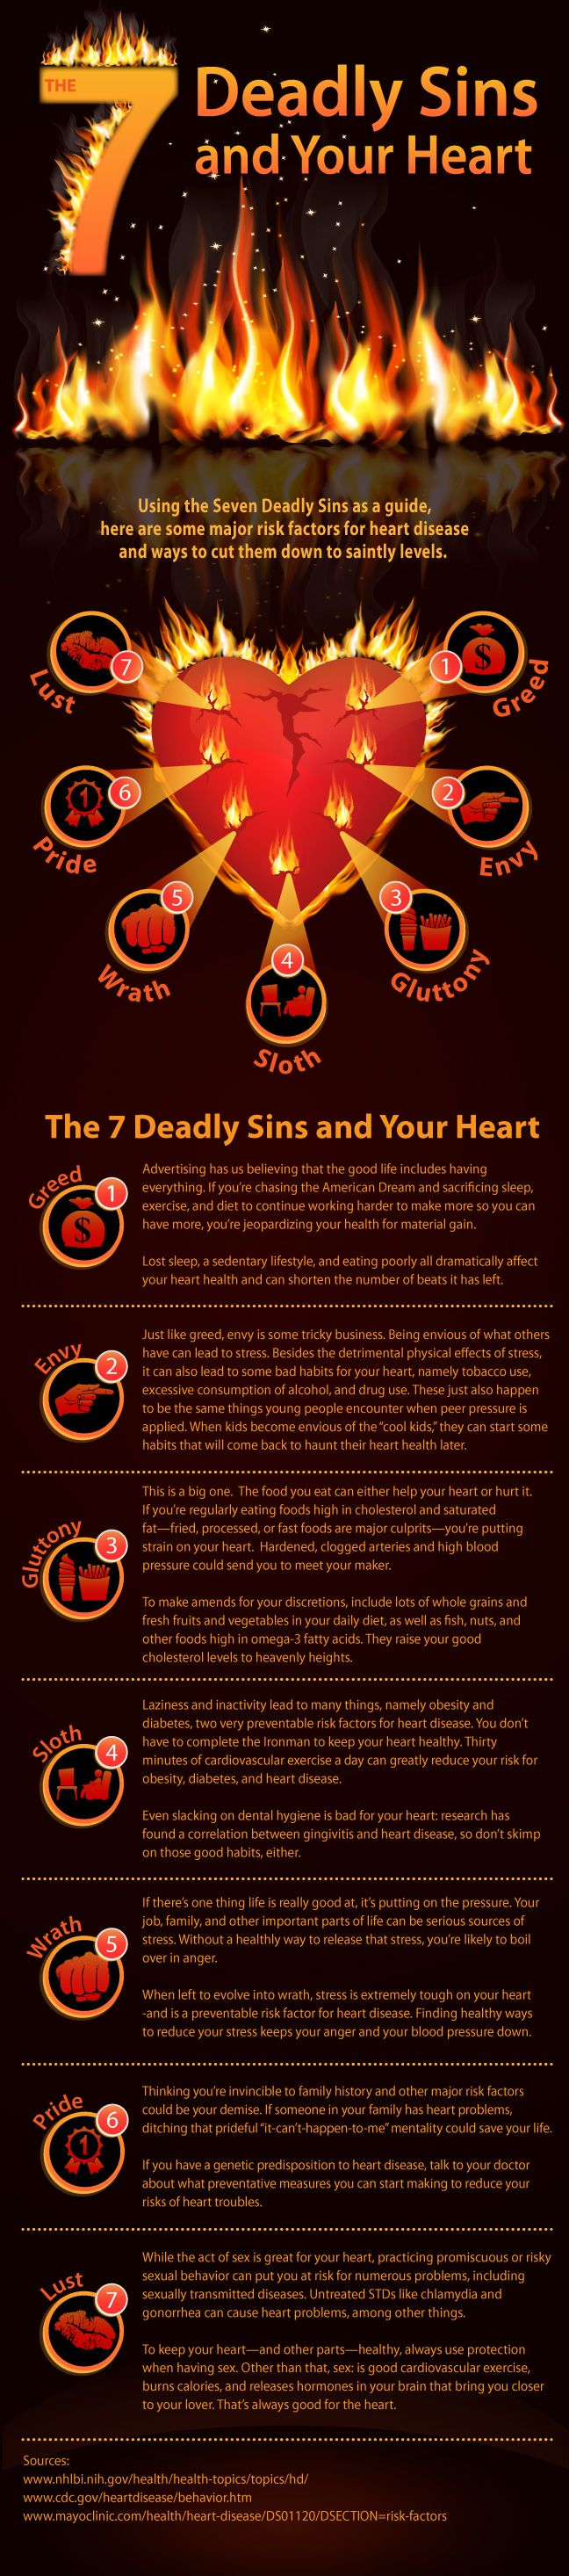 Heart Disease - Infographic - This fire-and-brimstone guide to heart health cleverly warns you of the cardiac dangers of the age-old Seven Deadly Sins.